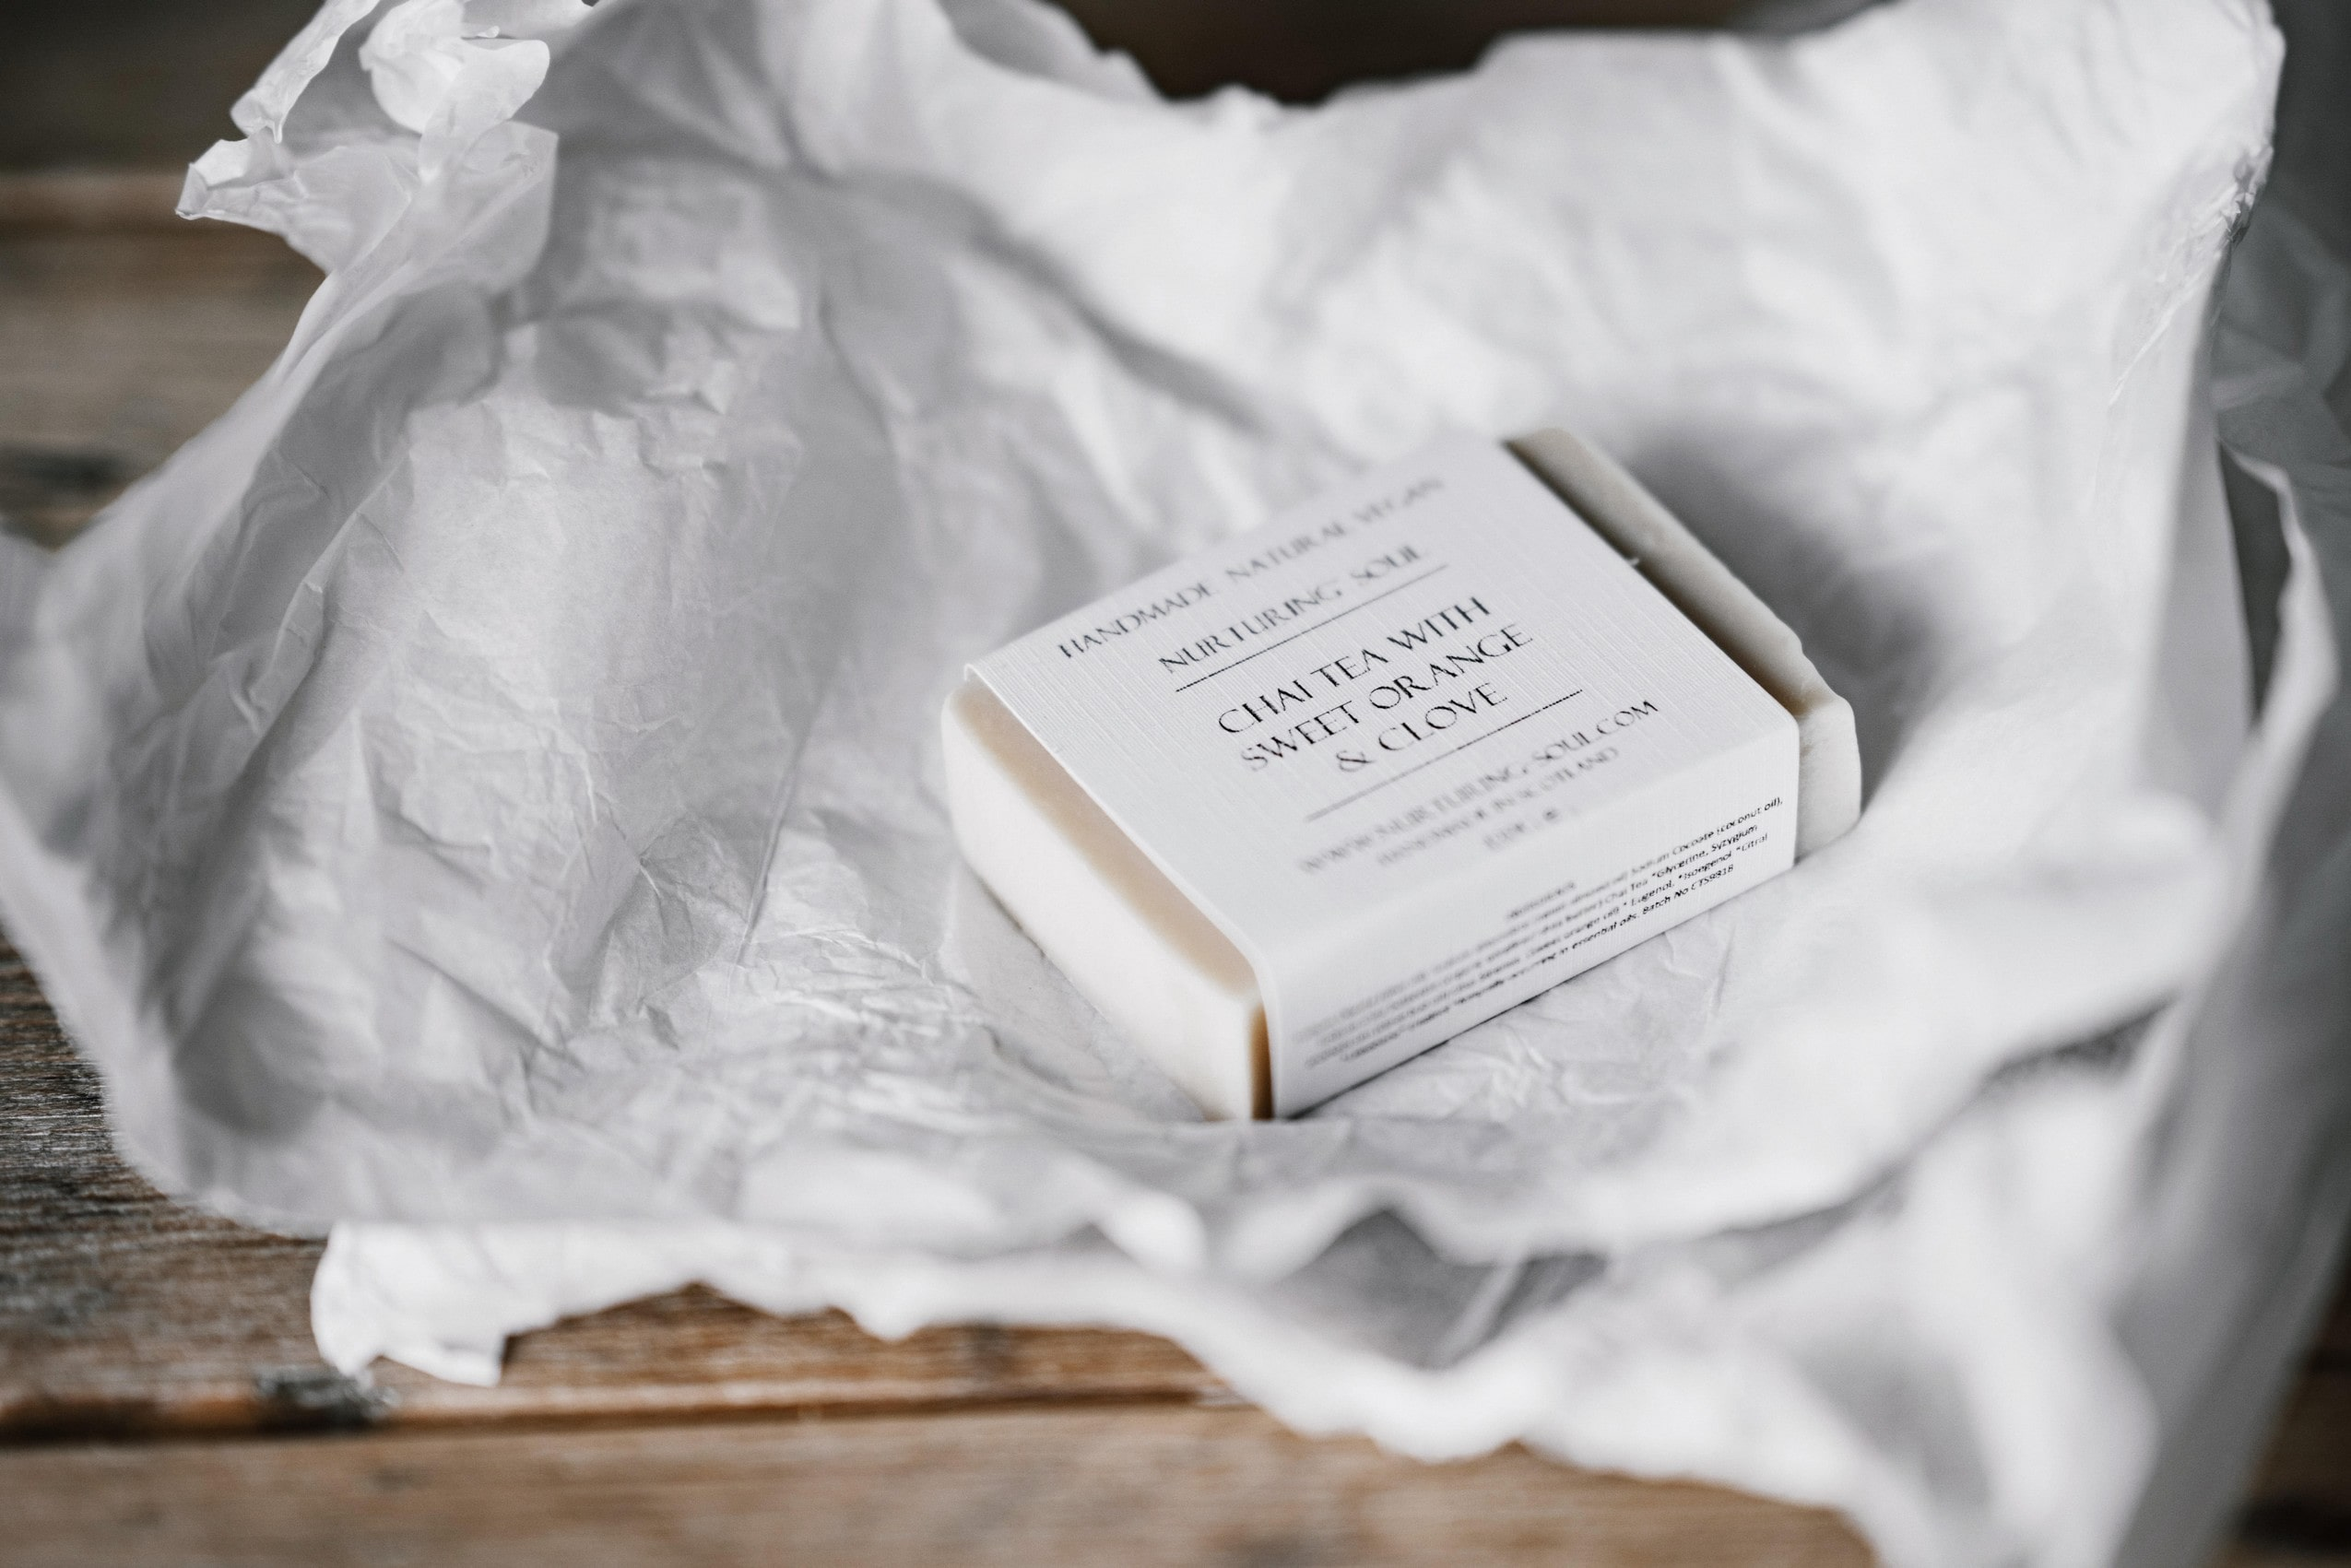 pictured is a bar of Chai Tea with Sweet Orange & Clove soap, laid on a crisp white paper.